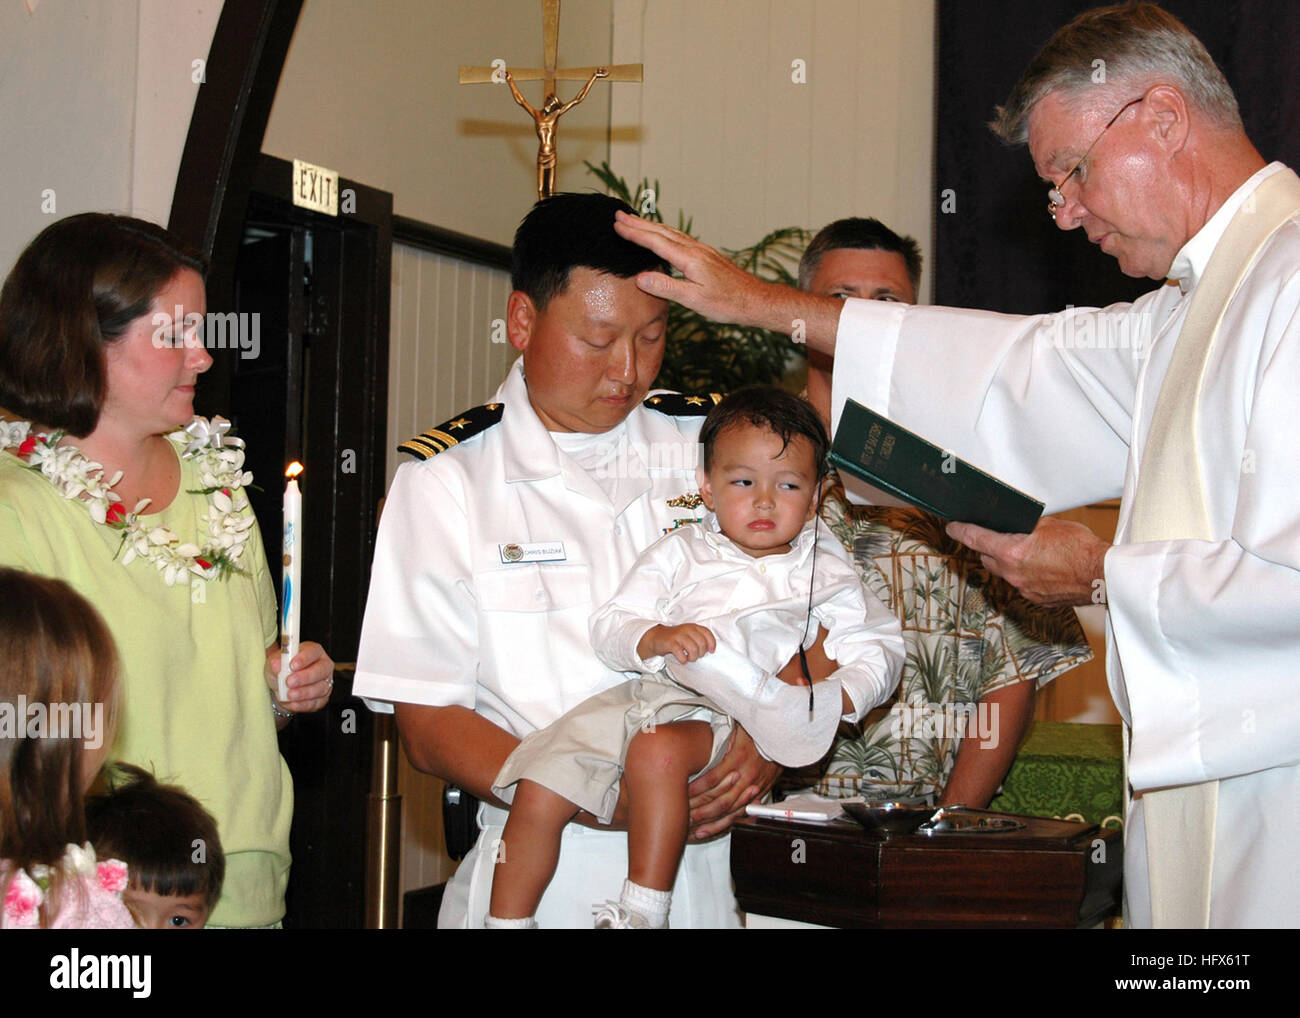 050711-N-5783F-001 Pearl Harbor, Hawaii (July 11, 2005) Ð Lt. Cmdr. Chris Buziak is blessed by Father Patrick - Stock Image